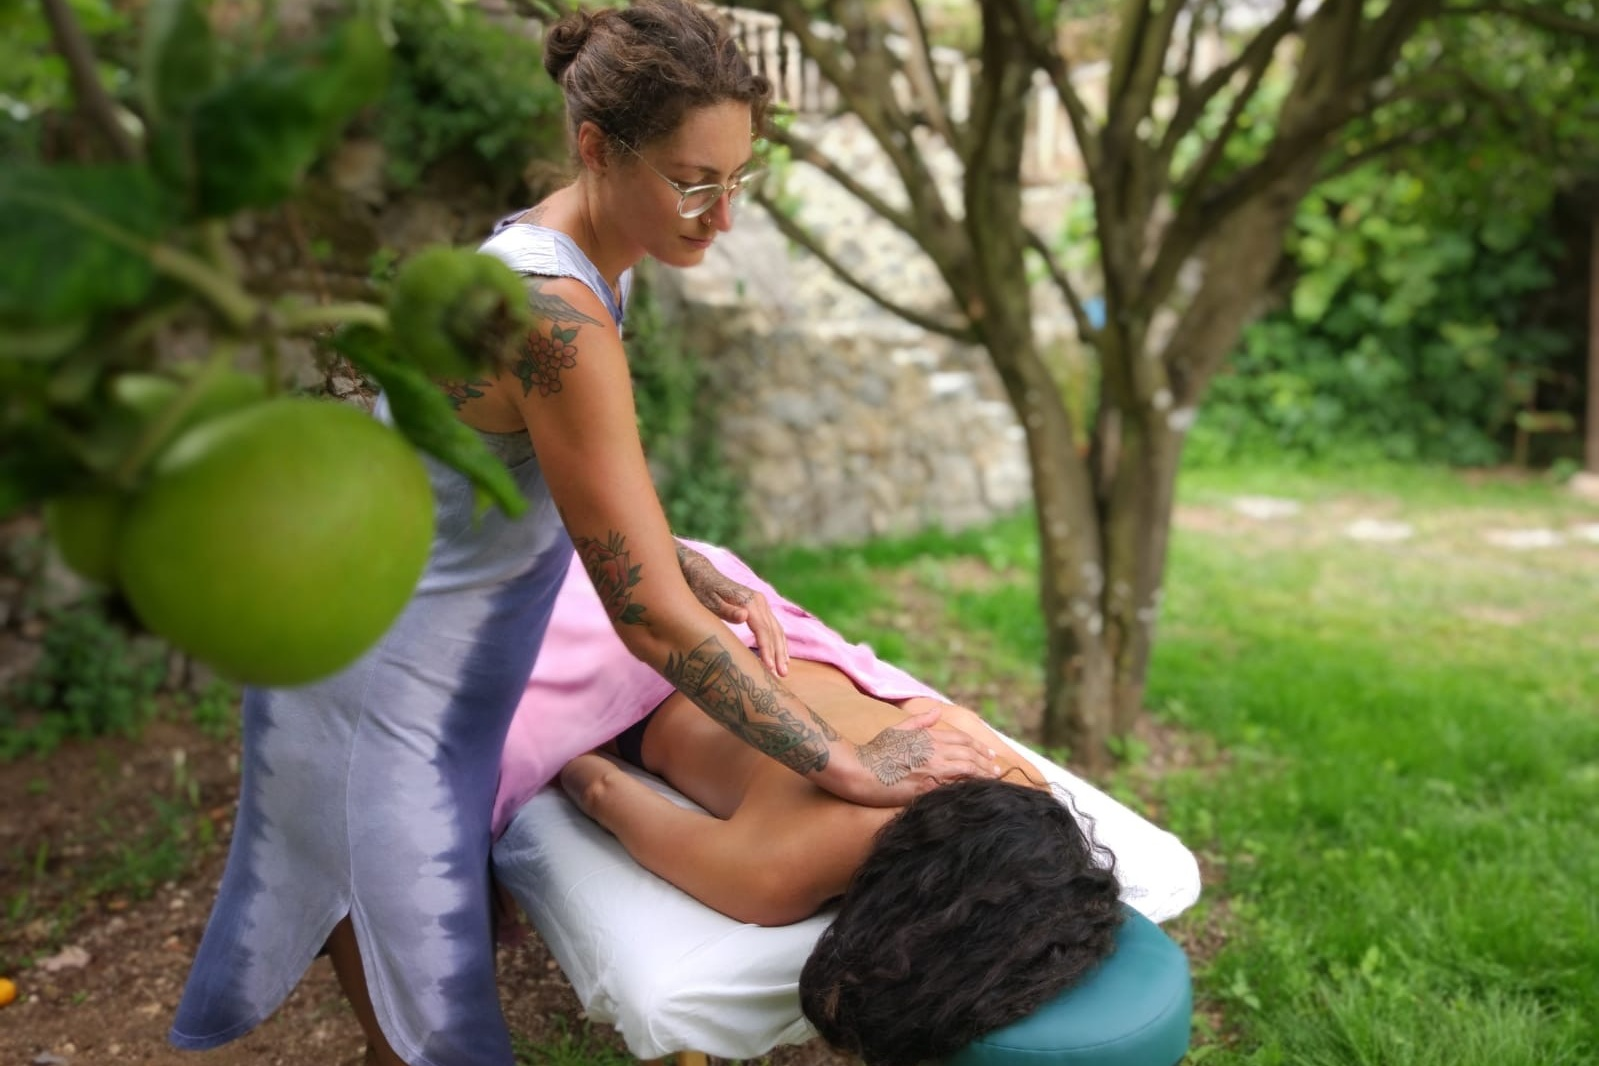 MASSAGE - Deep tissue relaxing massage, surrounded by nature. From 45€ per hourClick here for more